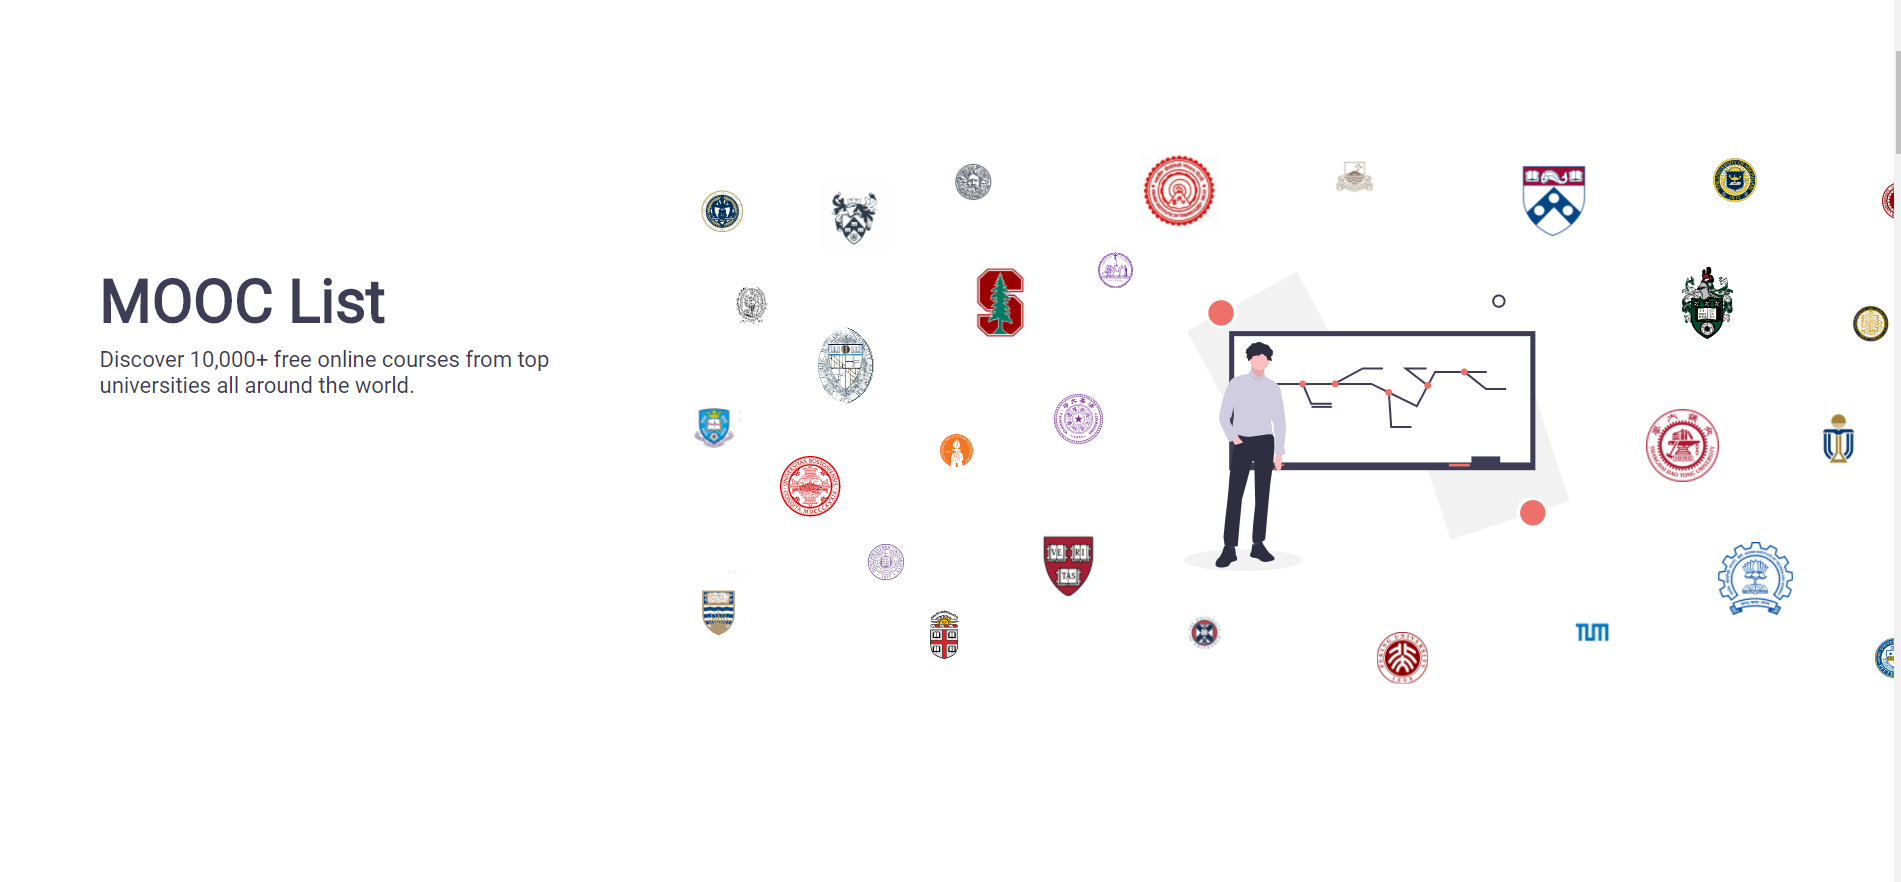 MOOC List - Get free education from the top universities of the world